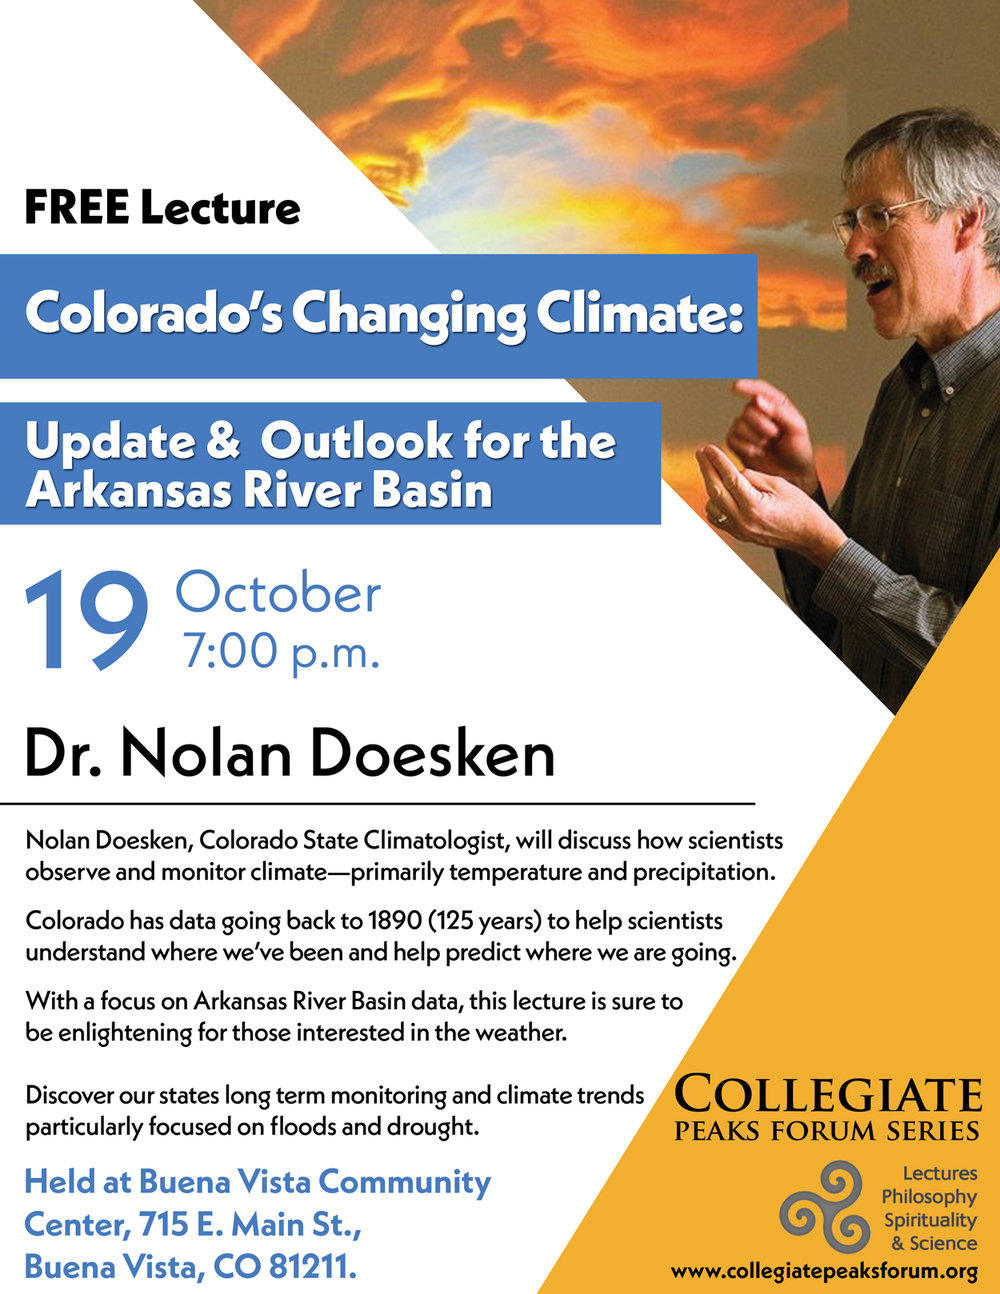 October 19, 2017 Dr. Nolan Doesken